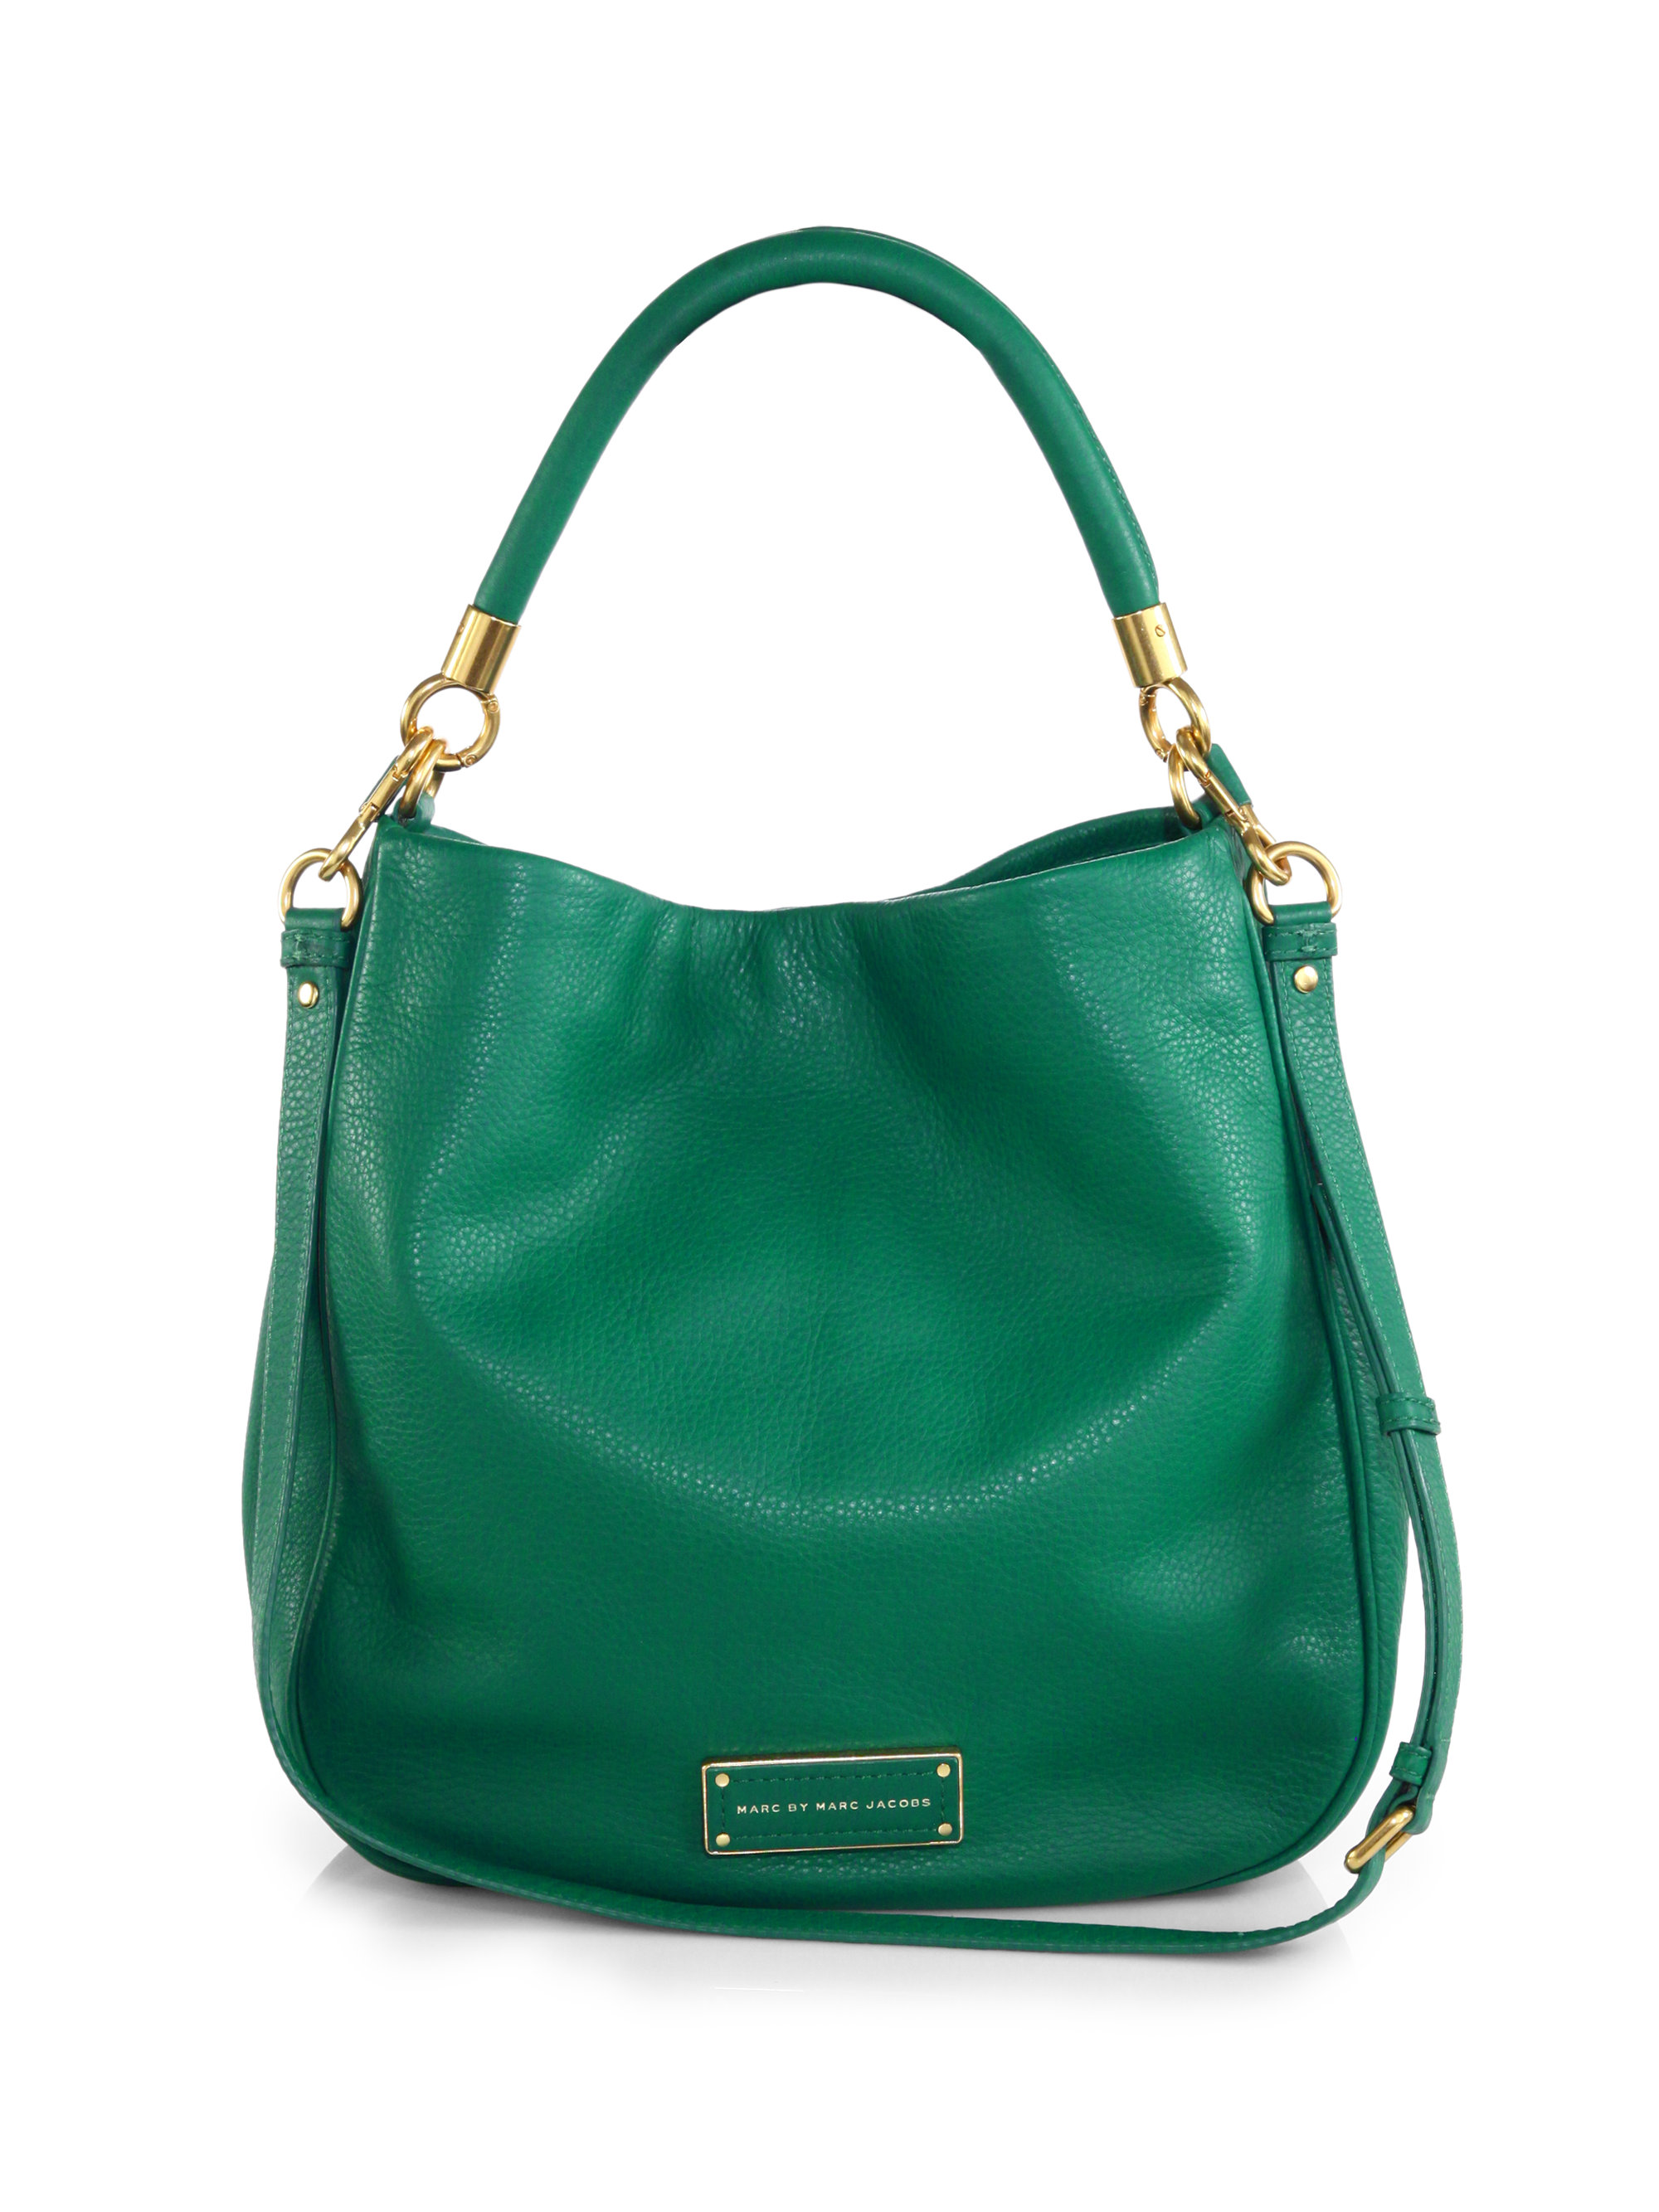 Marc by marc jacobs Too Hot To Handle Hobo Bag in Green | Lyst